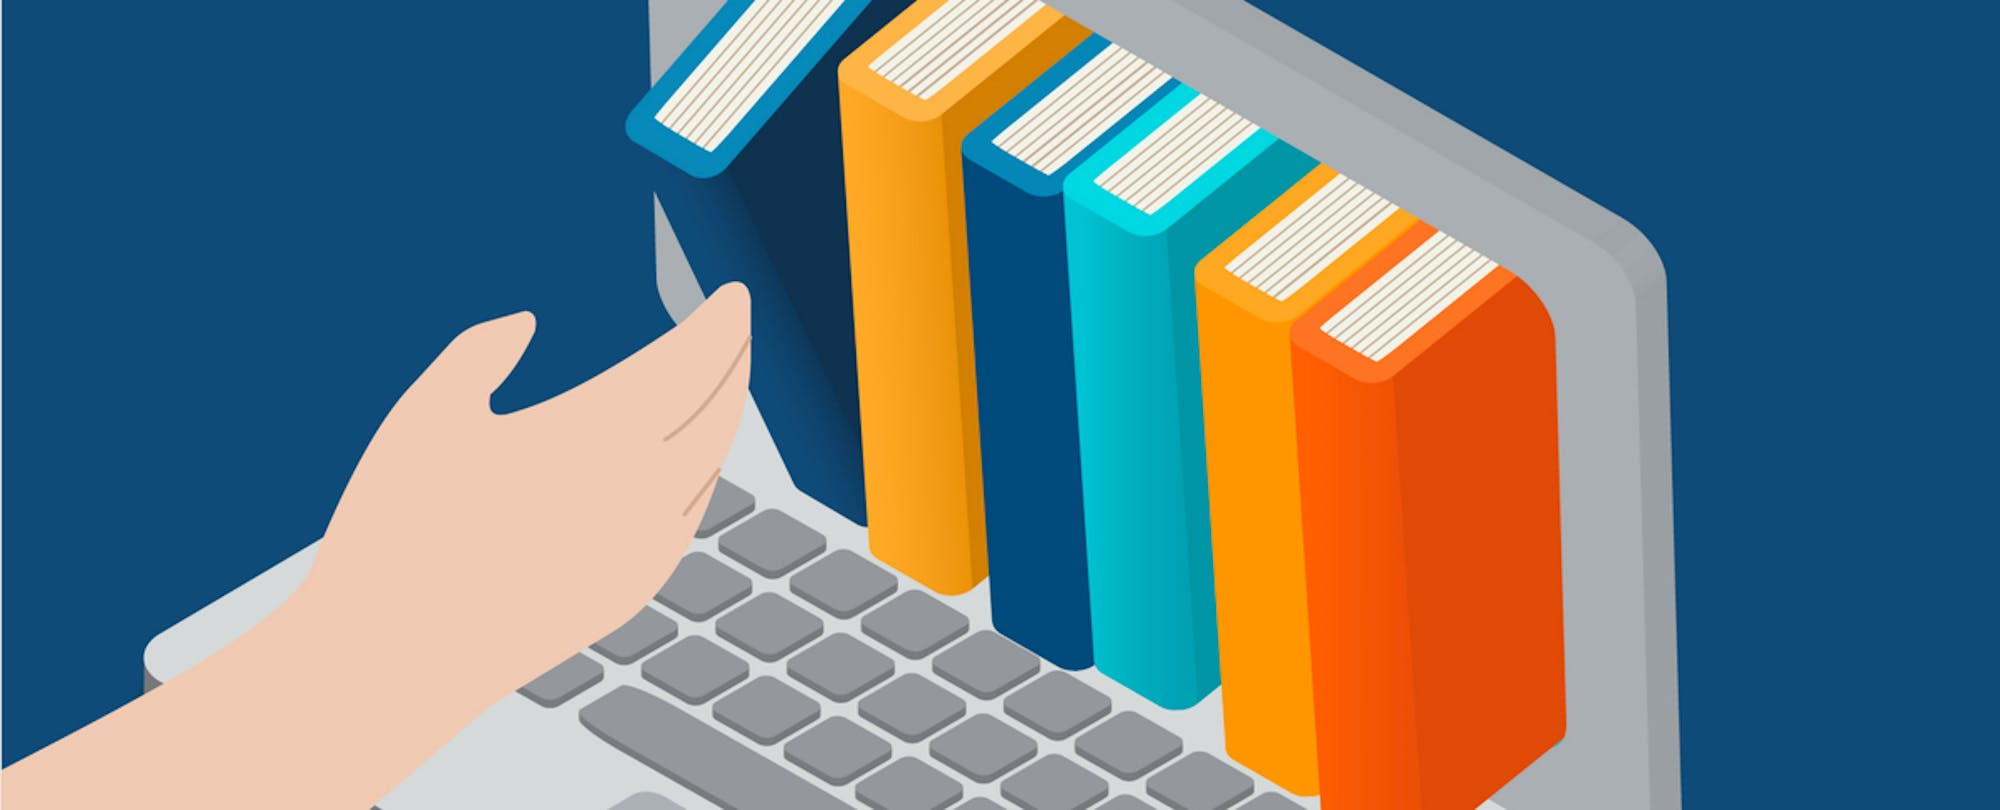 A Growing (But Controversial) Idea in Open-Access Textbooks: Let Students Help Write Them